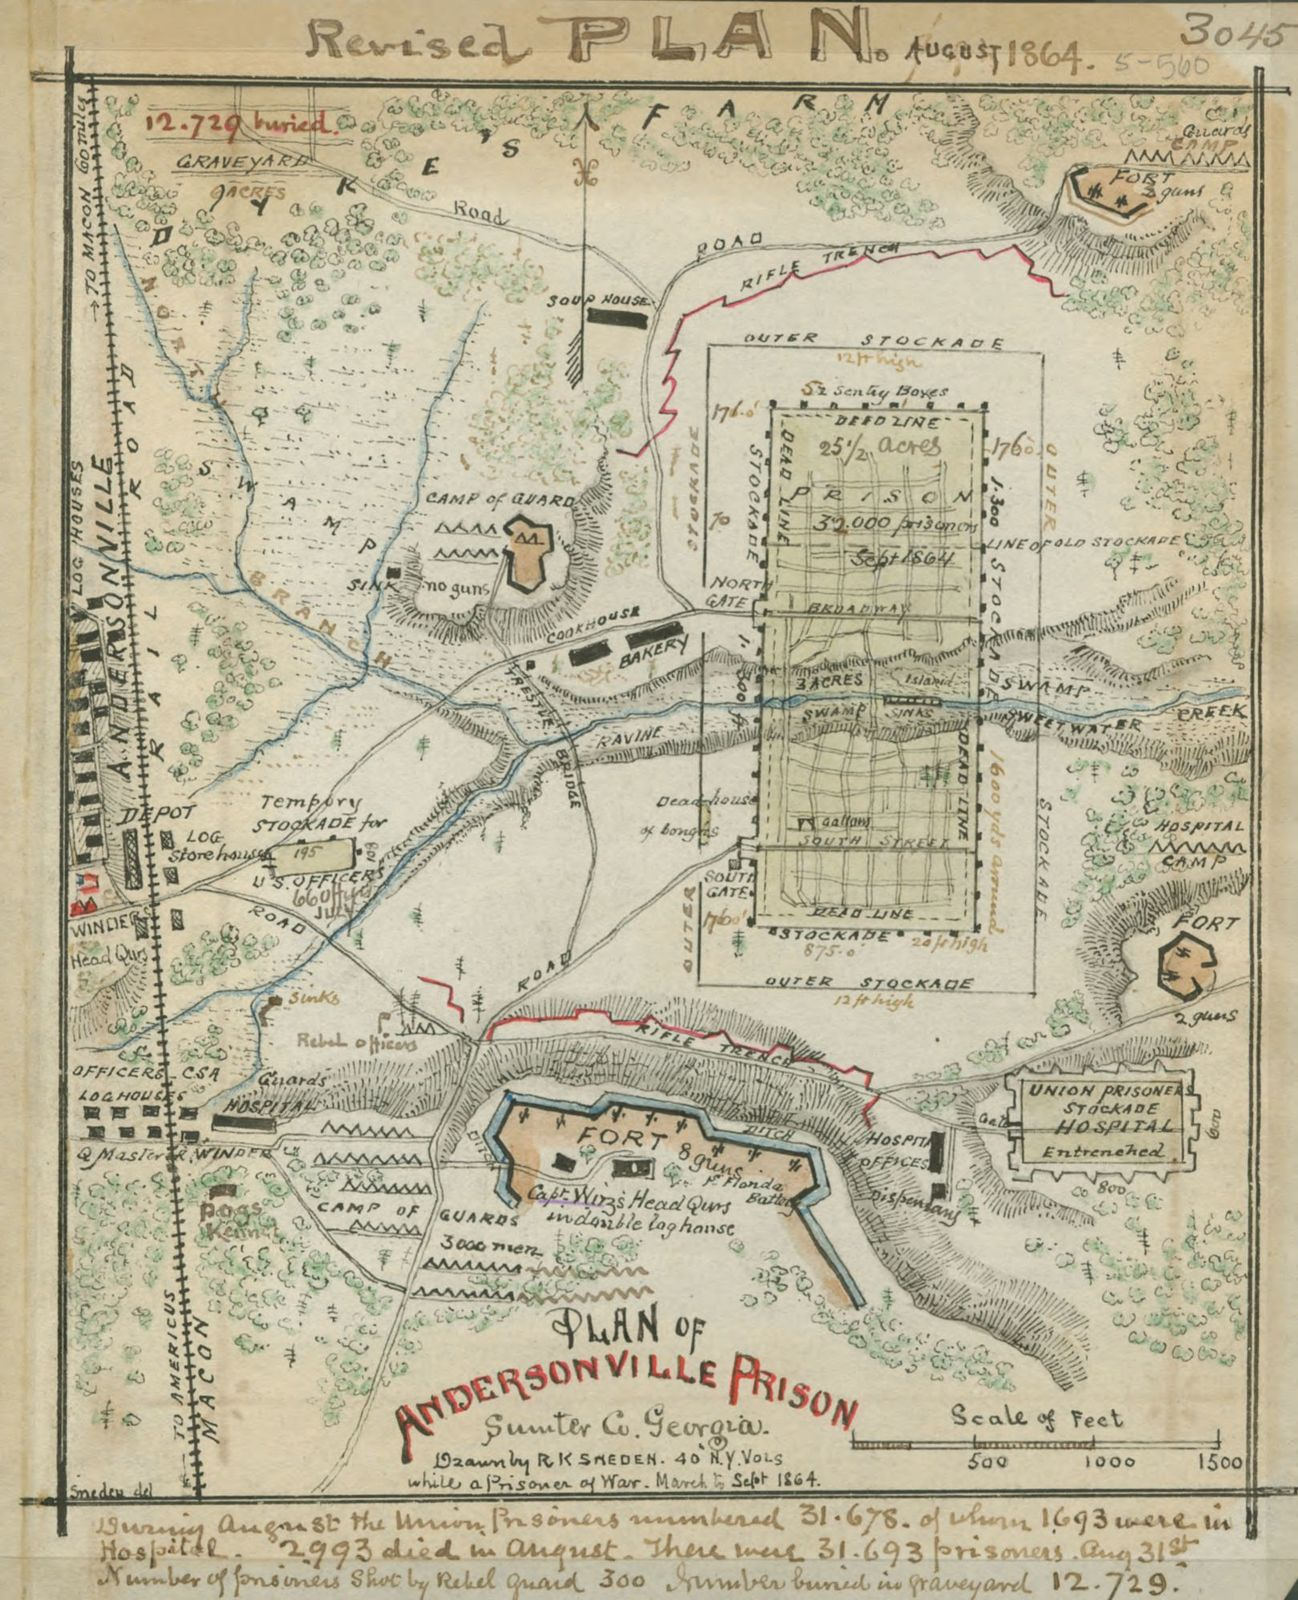 Map Of Georgia Prisons.Plan Of Andersonville Prison Sumter Co Georgia Picryl Public